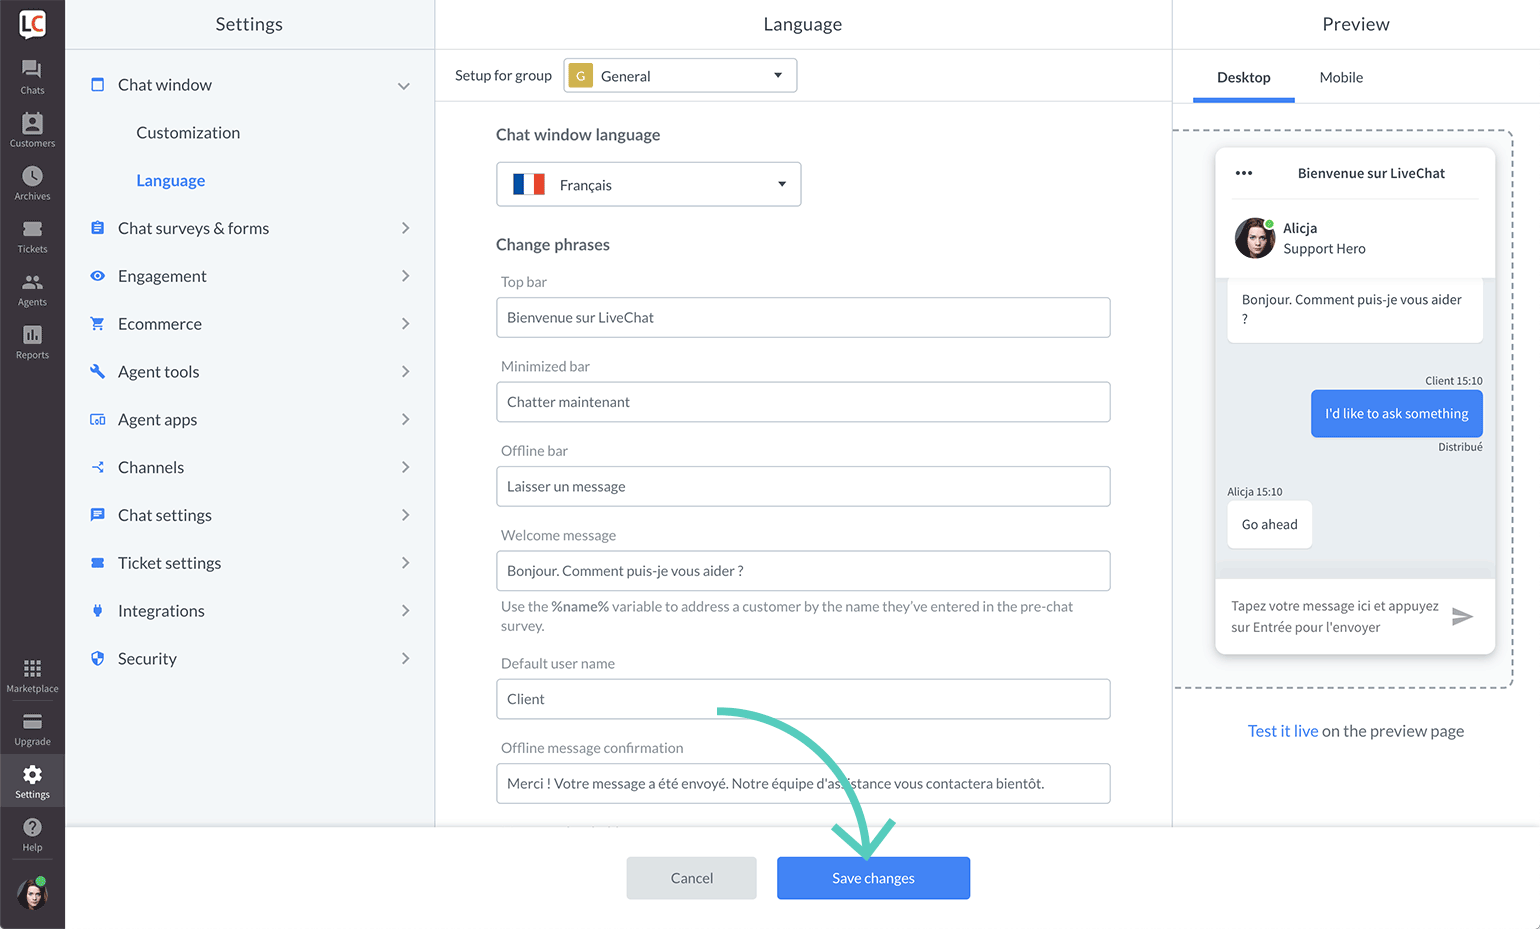 Save changes made to chat widget language settings